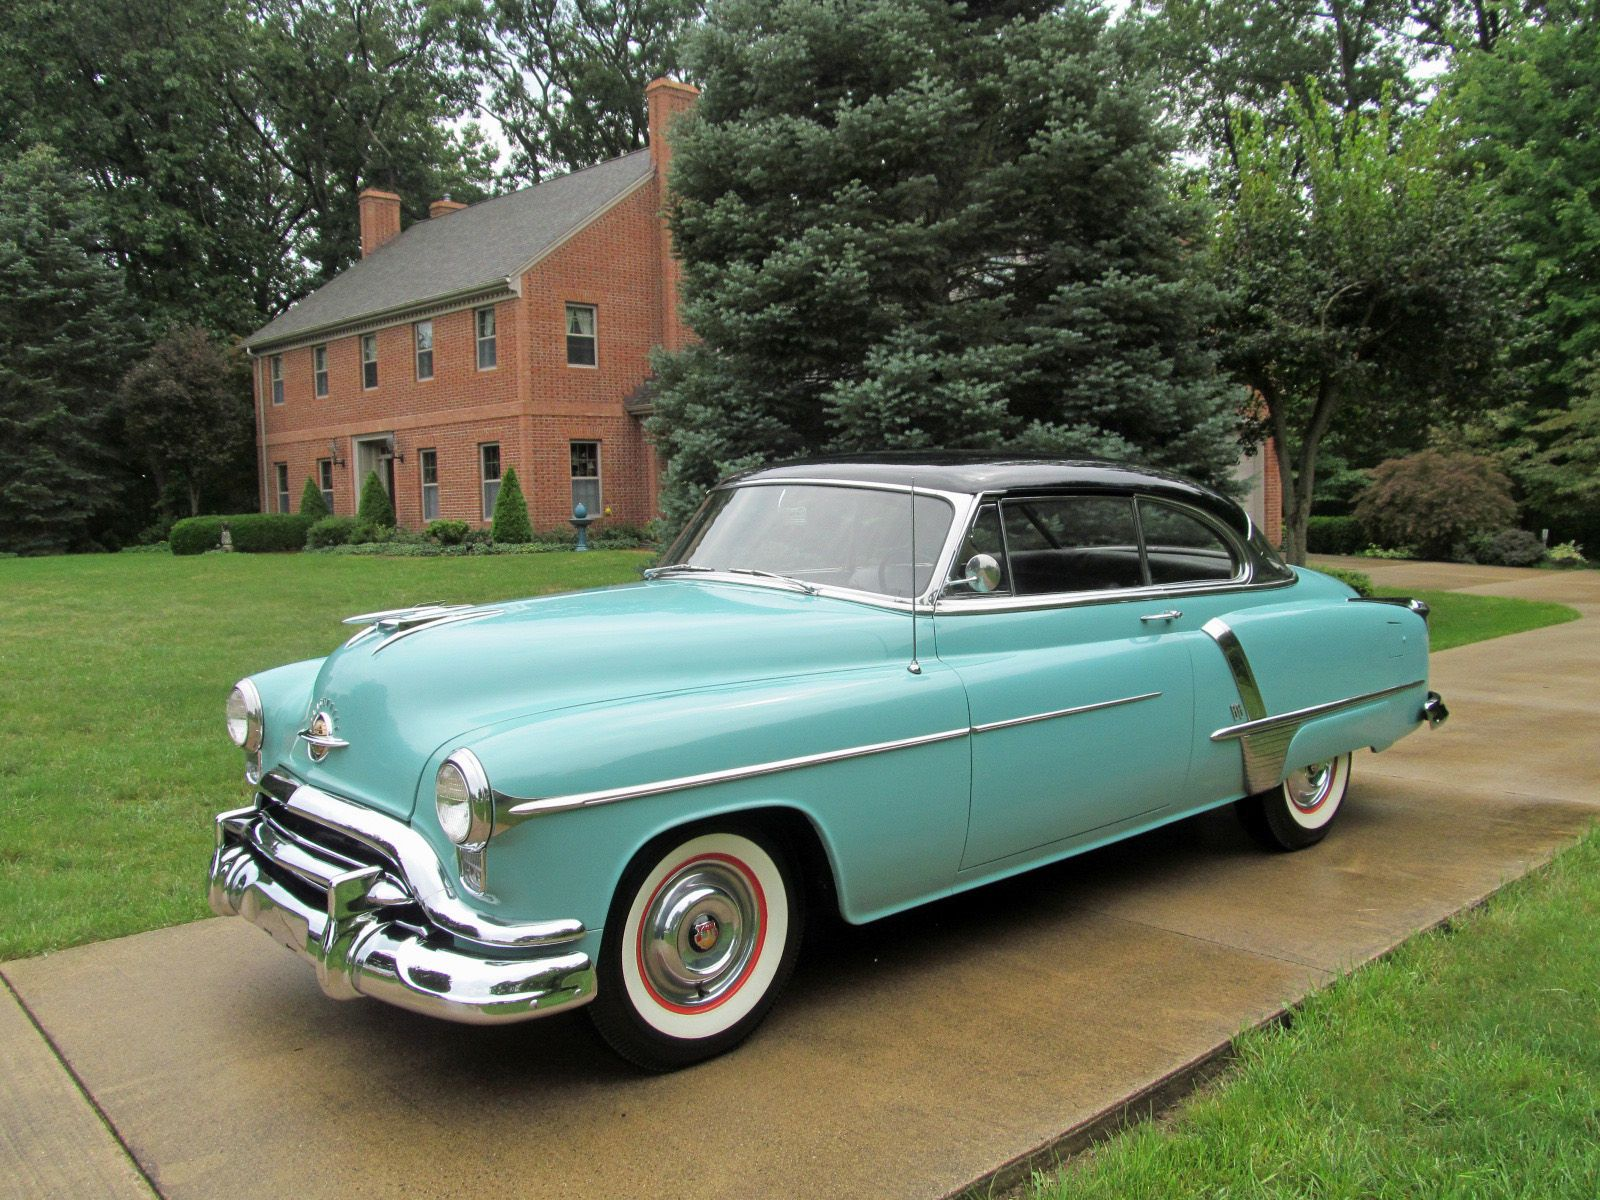 1951 Oldsmobile Super 88 Deluxe Holiday Coupe For Sale Buick Skylark Convertible Thumbnail 1